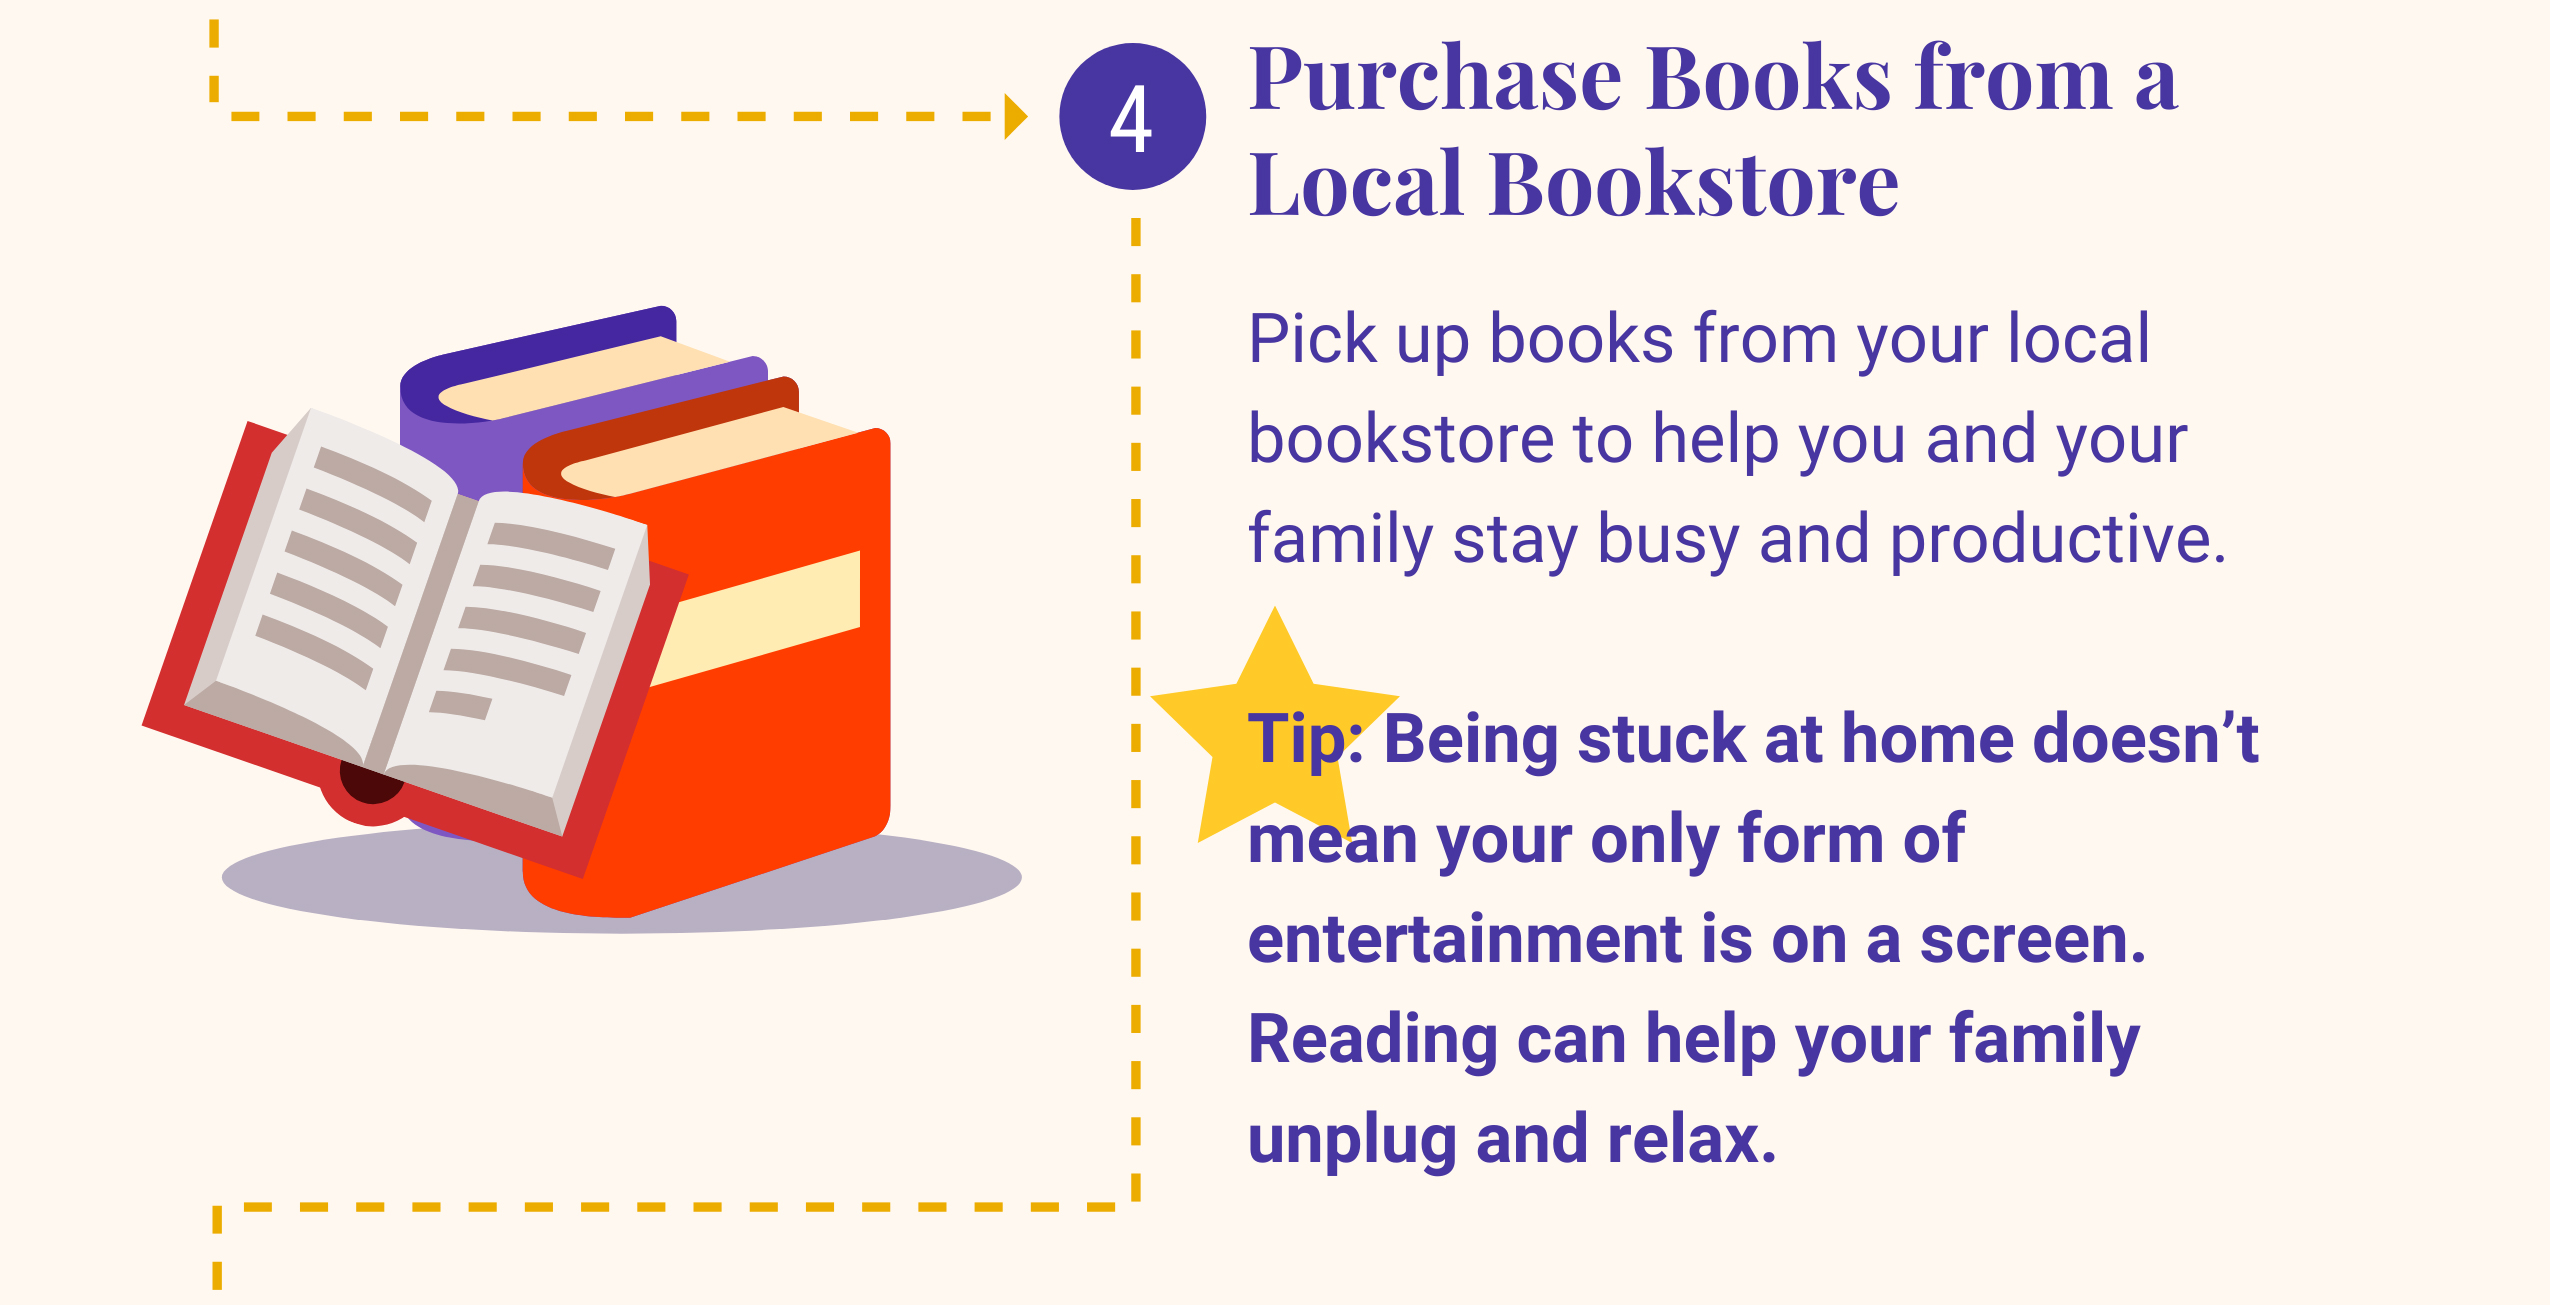 4: Purchase Books from a Local Bookstore. Pick up books from your local bookstore to help you and your family stay busy and productive. Tip: Being stuck at home doesn't mean your only form of entertainment is on a screen. Reading can help your family unplug and relax.